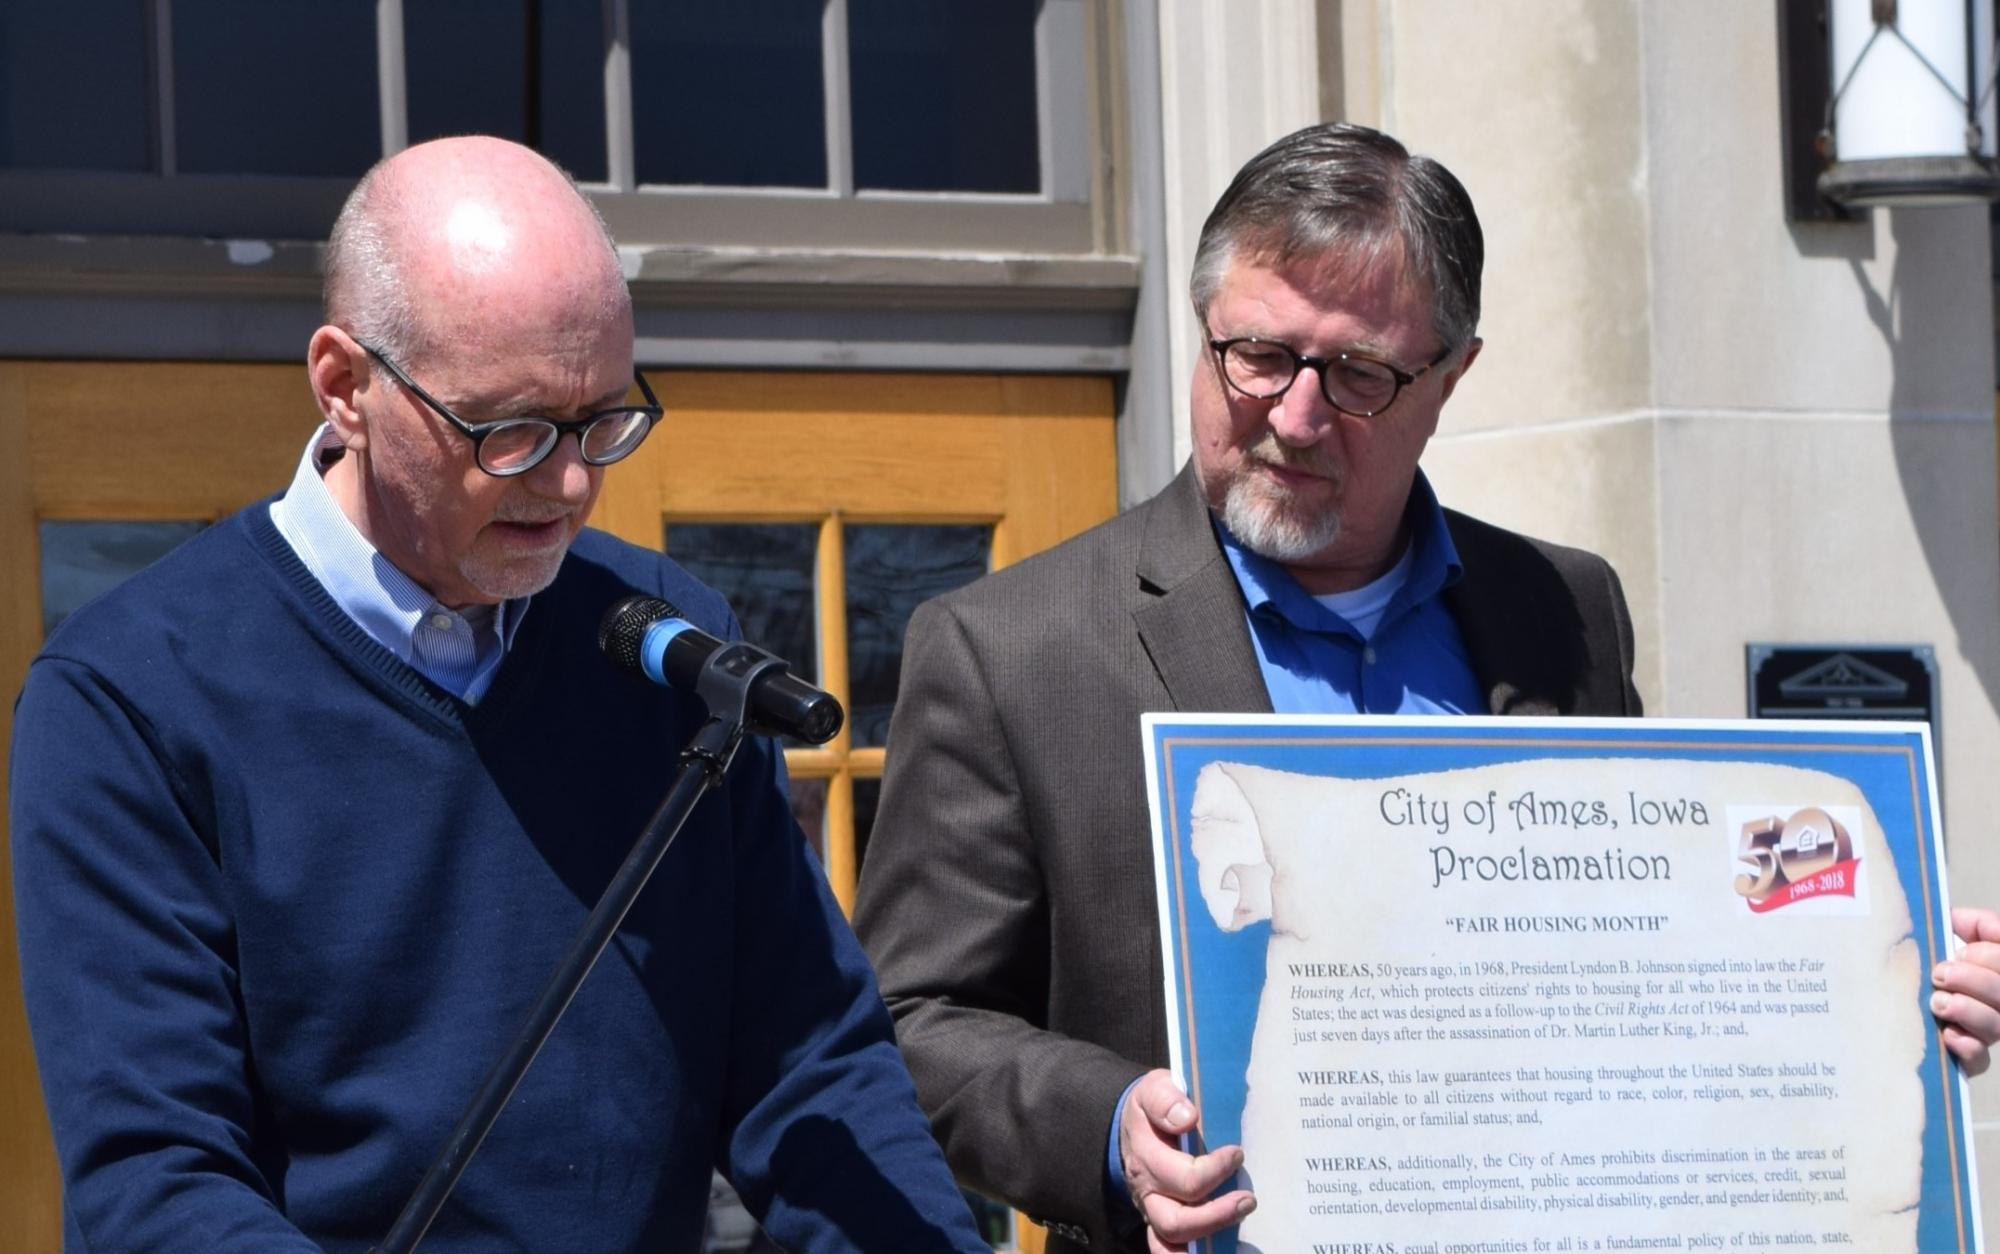 [Mayor Haila reads the Proclamation while Field Office Director Eggleston holds a life size version of the proclamation].